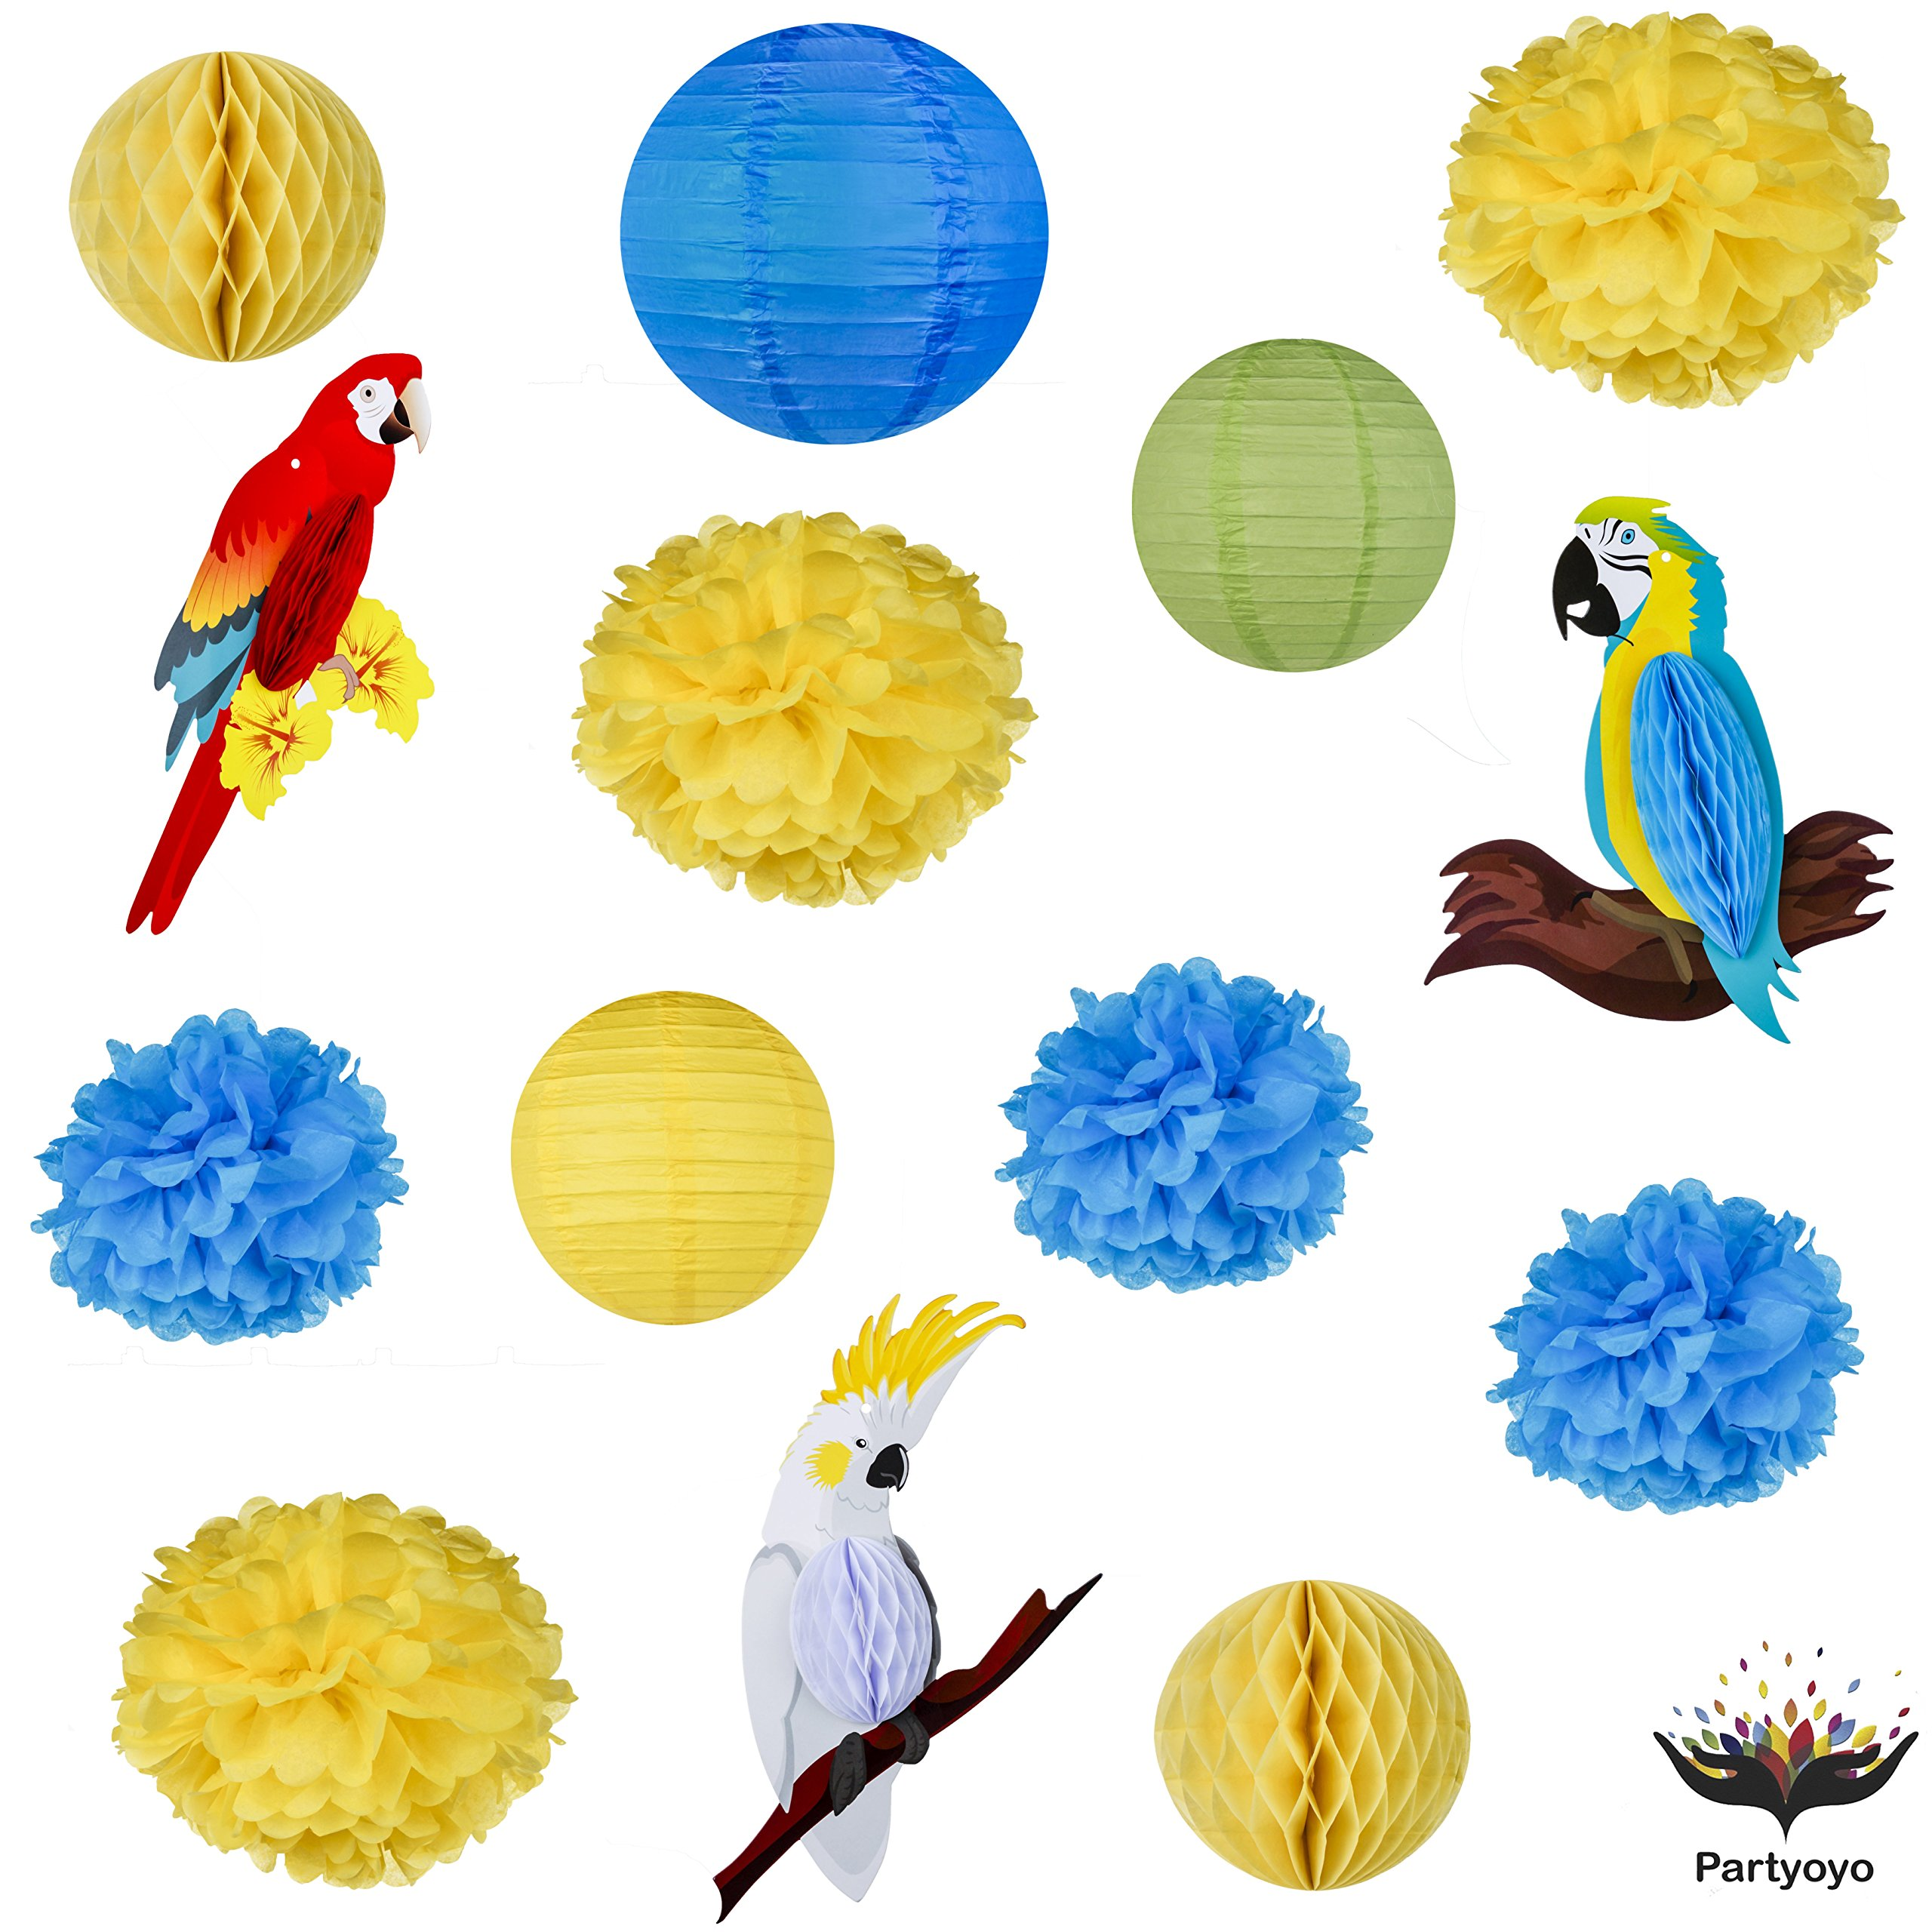 Bright and Colorful Paper Lanterns – Lantern Party Decorations for Festivals, Birthdays, Anniversaries – Flower, Ball, and Parrot Paper Lanterns – Set of 14 Sturdy Color Party Decorations by Partyoyo